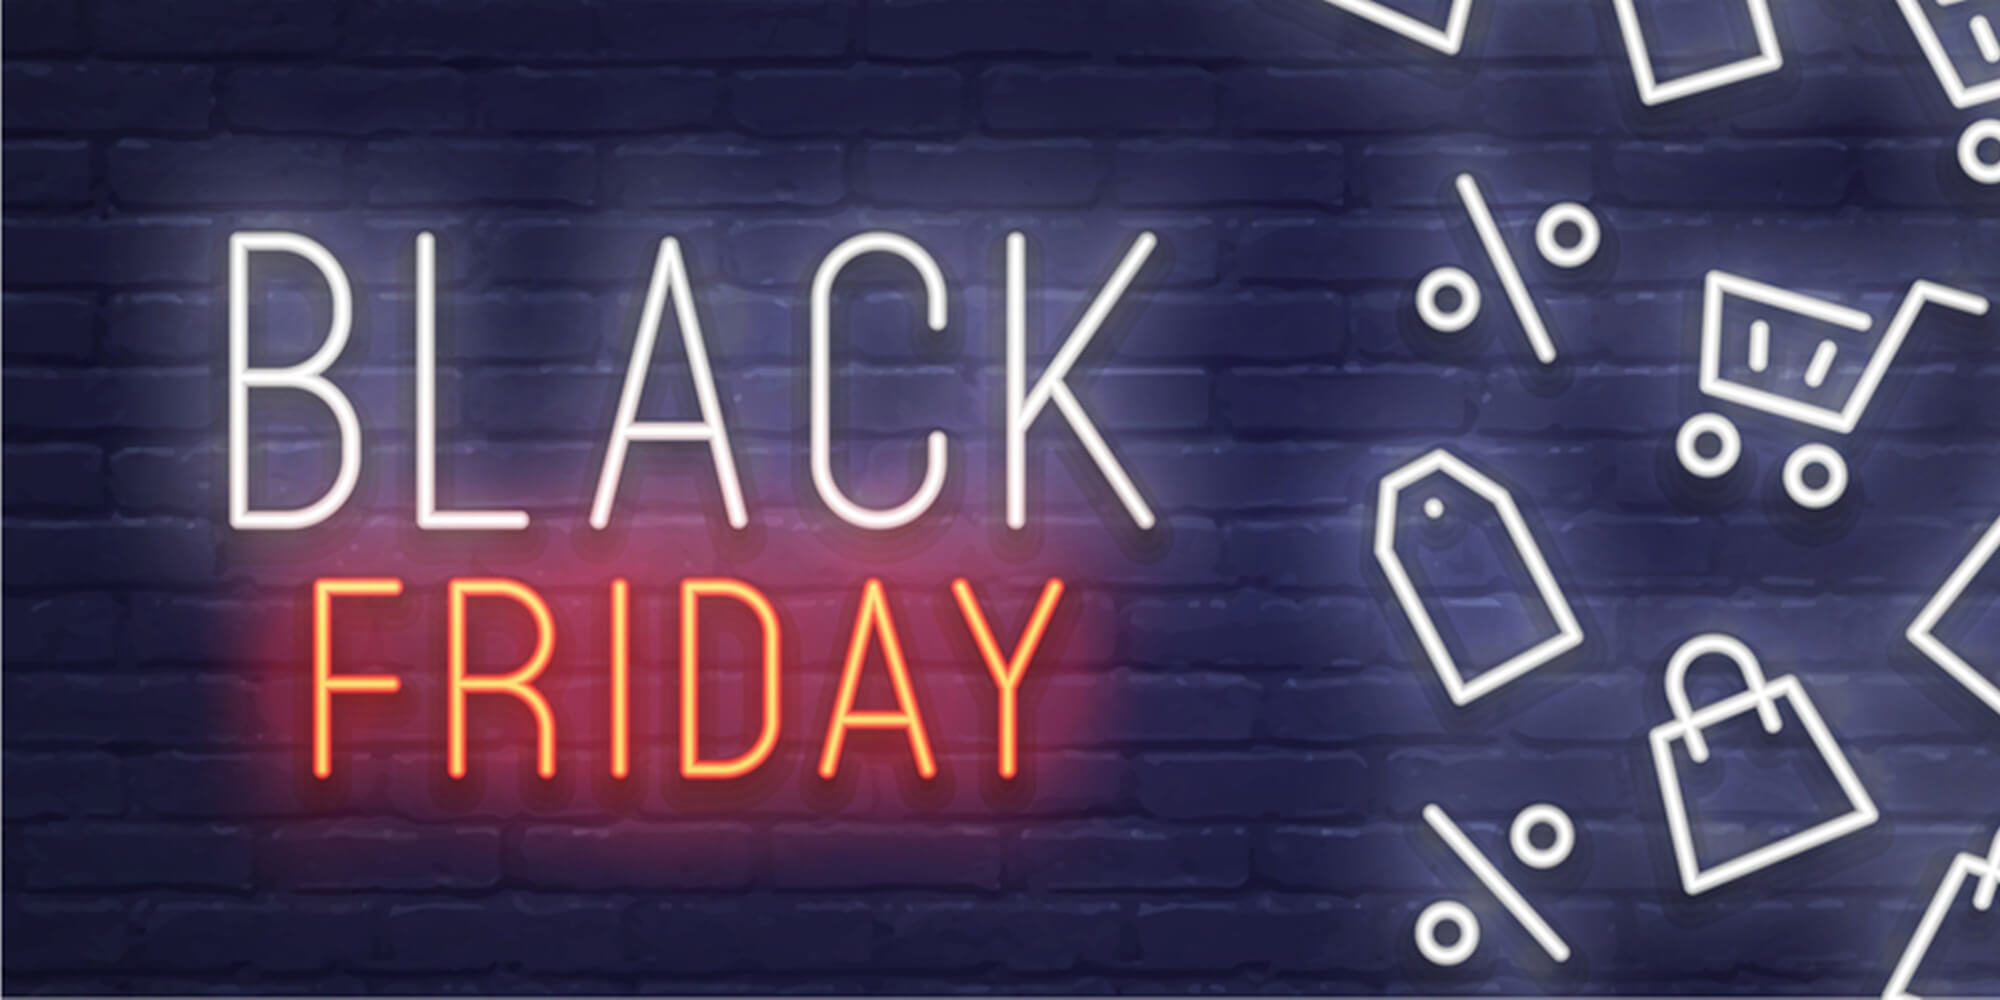 black-friday-blacknight-sale-domain-offer